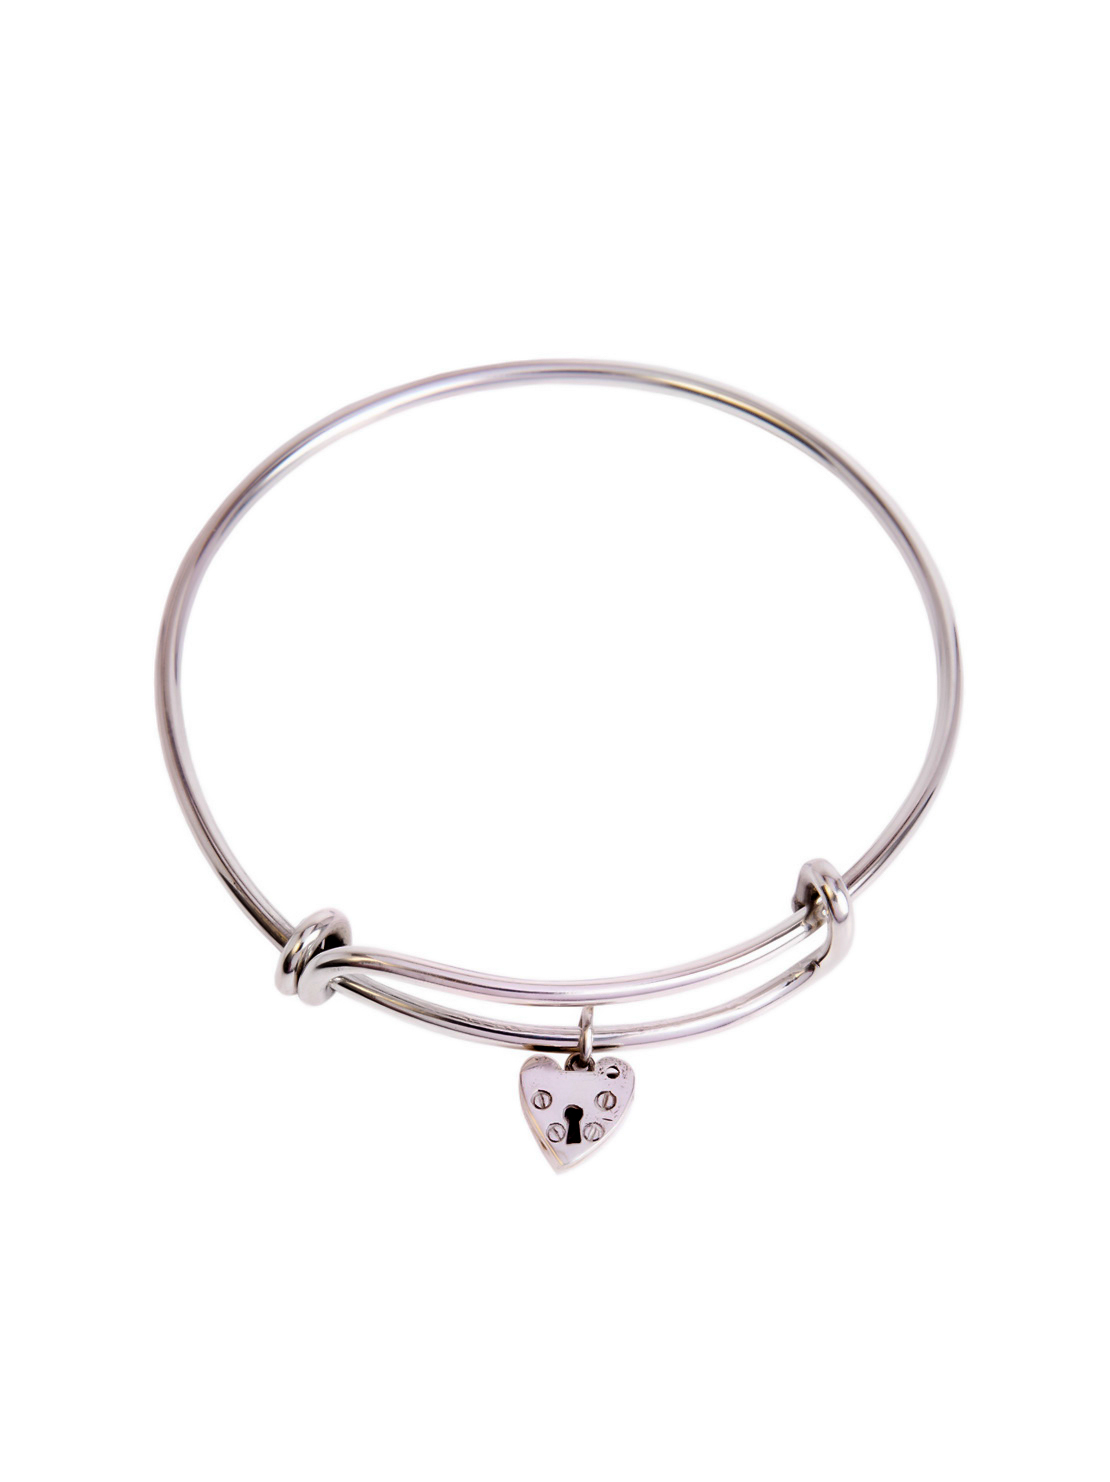 charm etsy il market sterling bangle adjustable silver bangles a expandable bracelet add